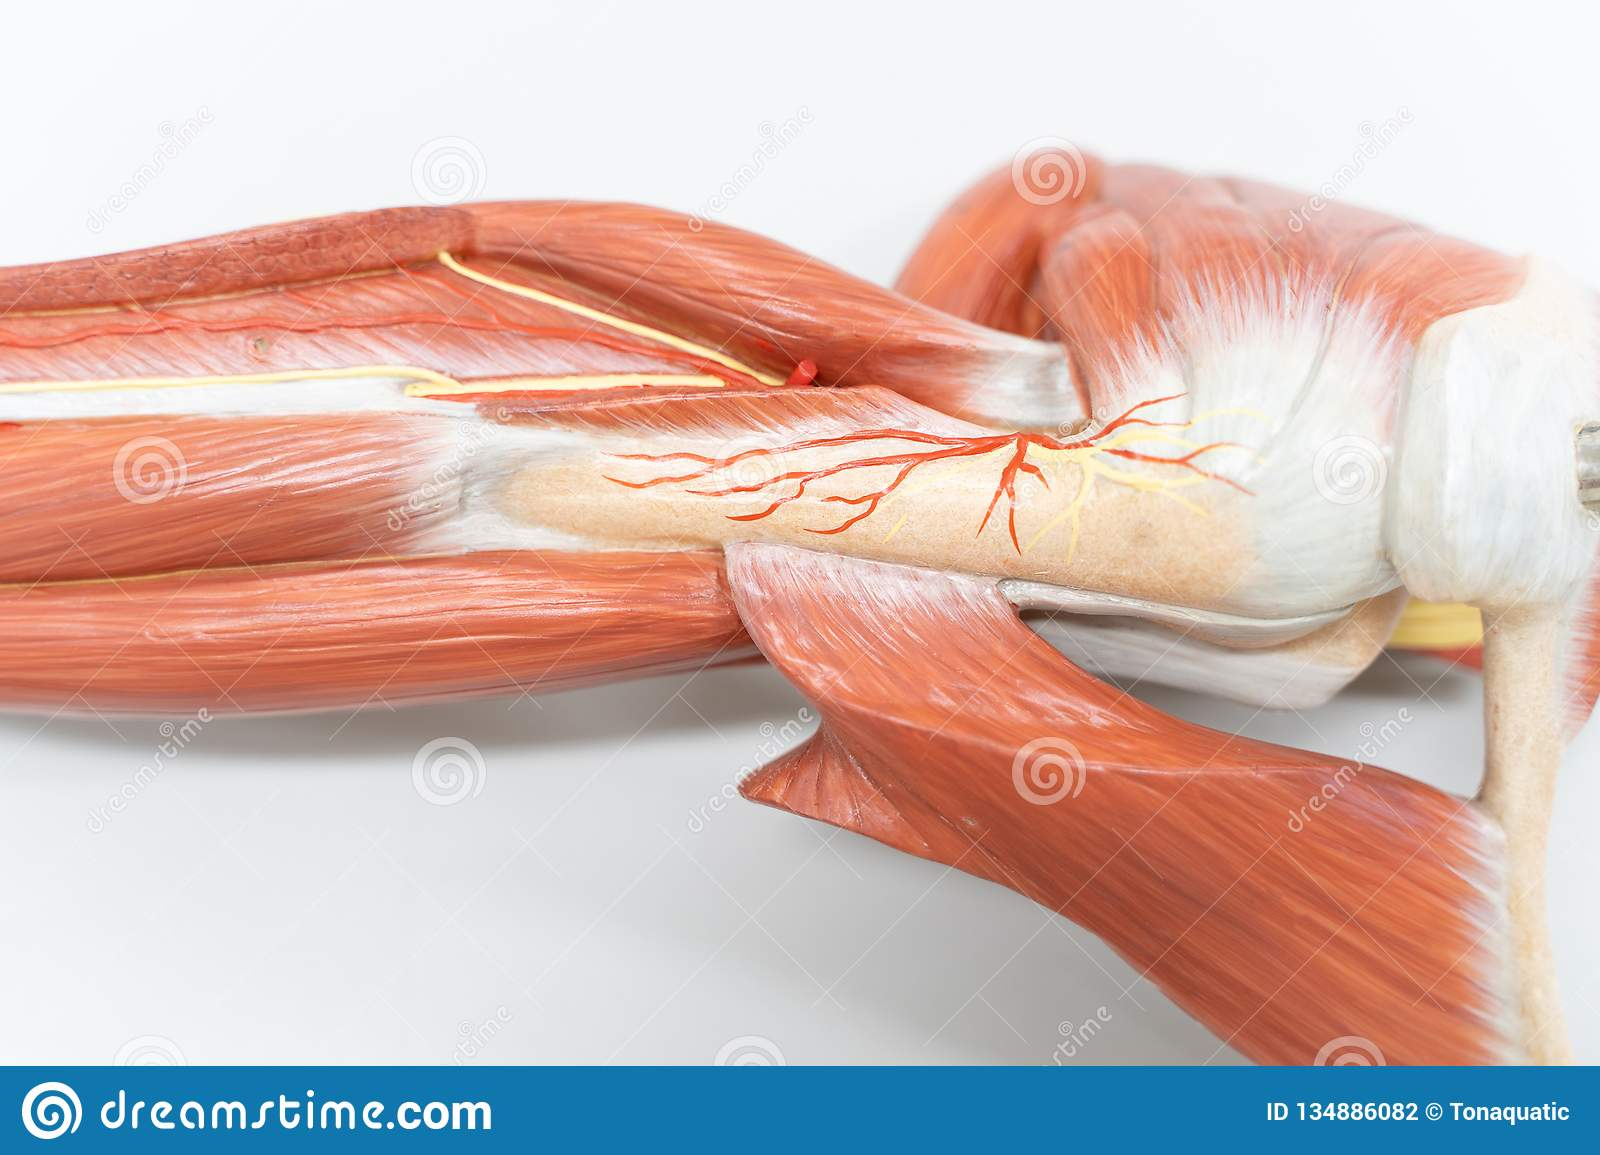 Muscles of the shoulder for anatomy education